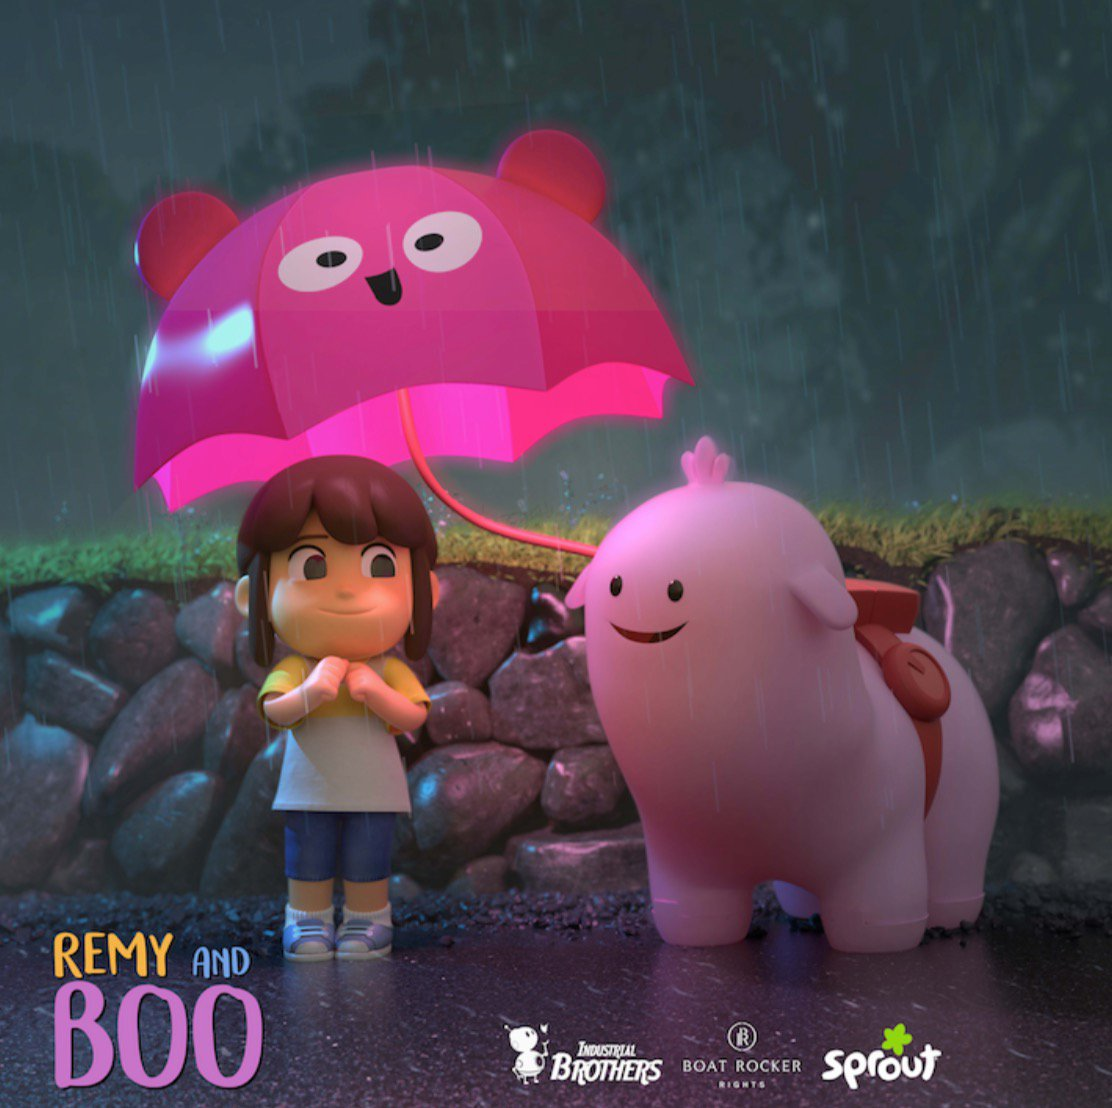 """SPOTLIGHT ON: REMY AND BOO   Check out the adorable animation for the upcoming children's series, """"Remy & Boo""""  Remy & Boo follows five-year old Remy and her robot friend Boo, who is programmed to learn and feel real emotions. The show follows their journey of love, friendship, and what it truly means to be human. The series is set in the near future and was created by the Industrial Brothers' and will be produced by Boat Rocker Studios.  We're almost done with the script reports for the series. It's such a sweet show that reminds us of the importance of friendship and teamwork."""